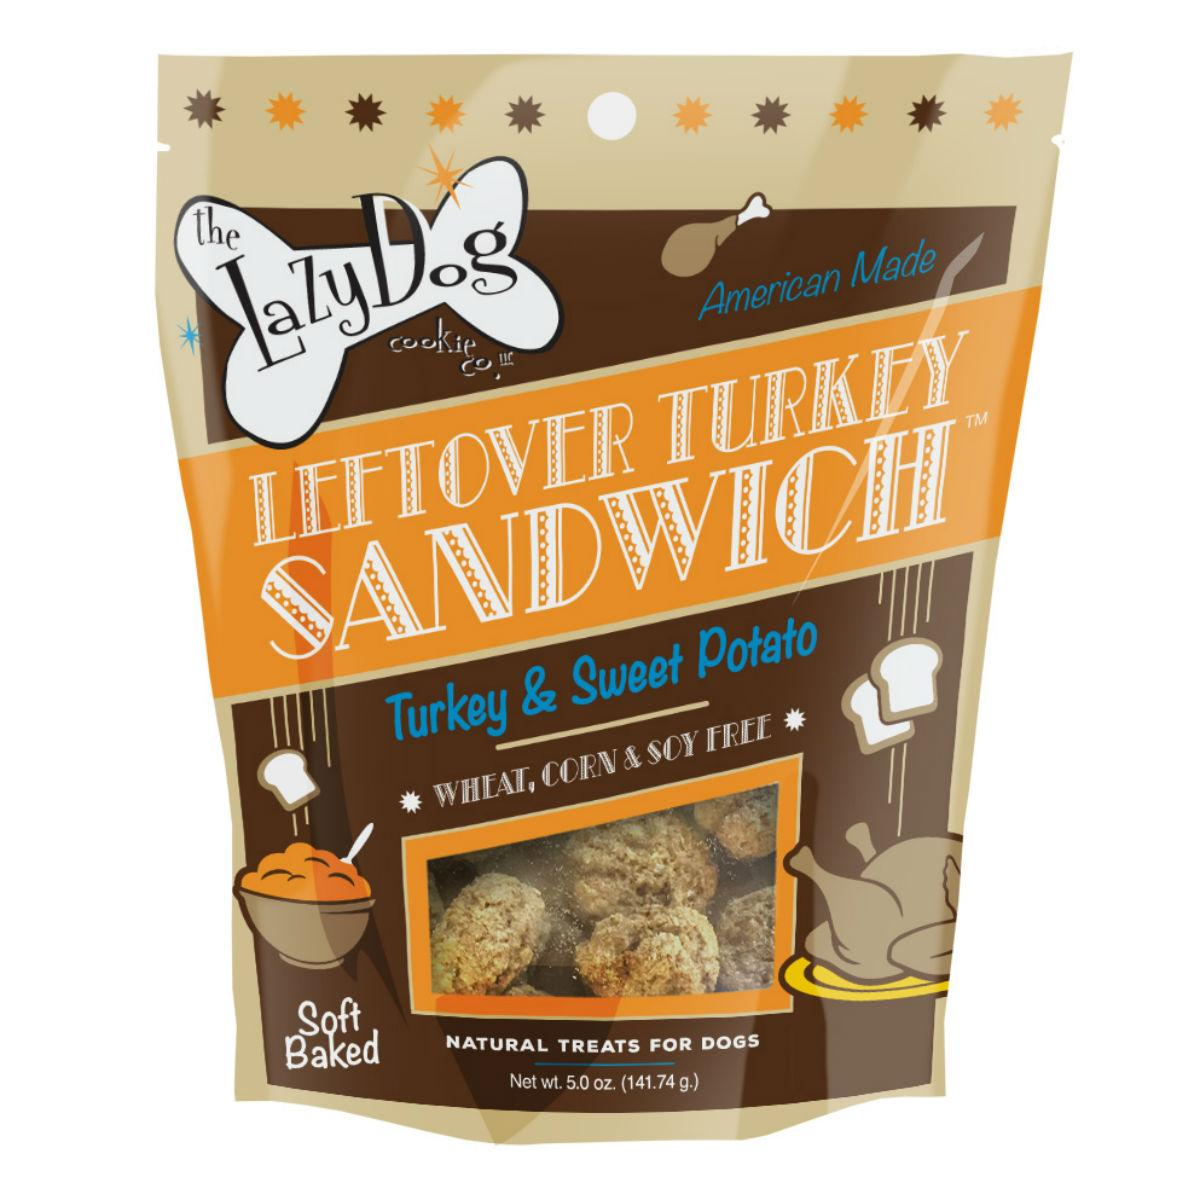 The Lazy Dog Leftover Turkey Sandwich Dog Treats - Turkey & Sweet Potato